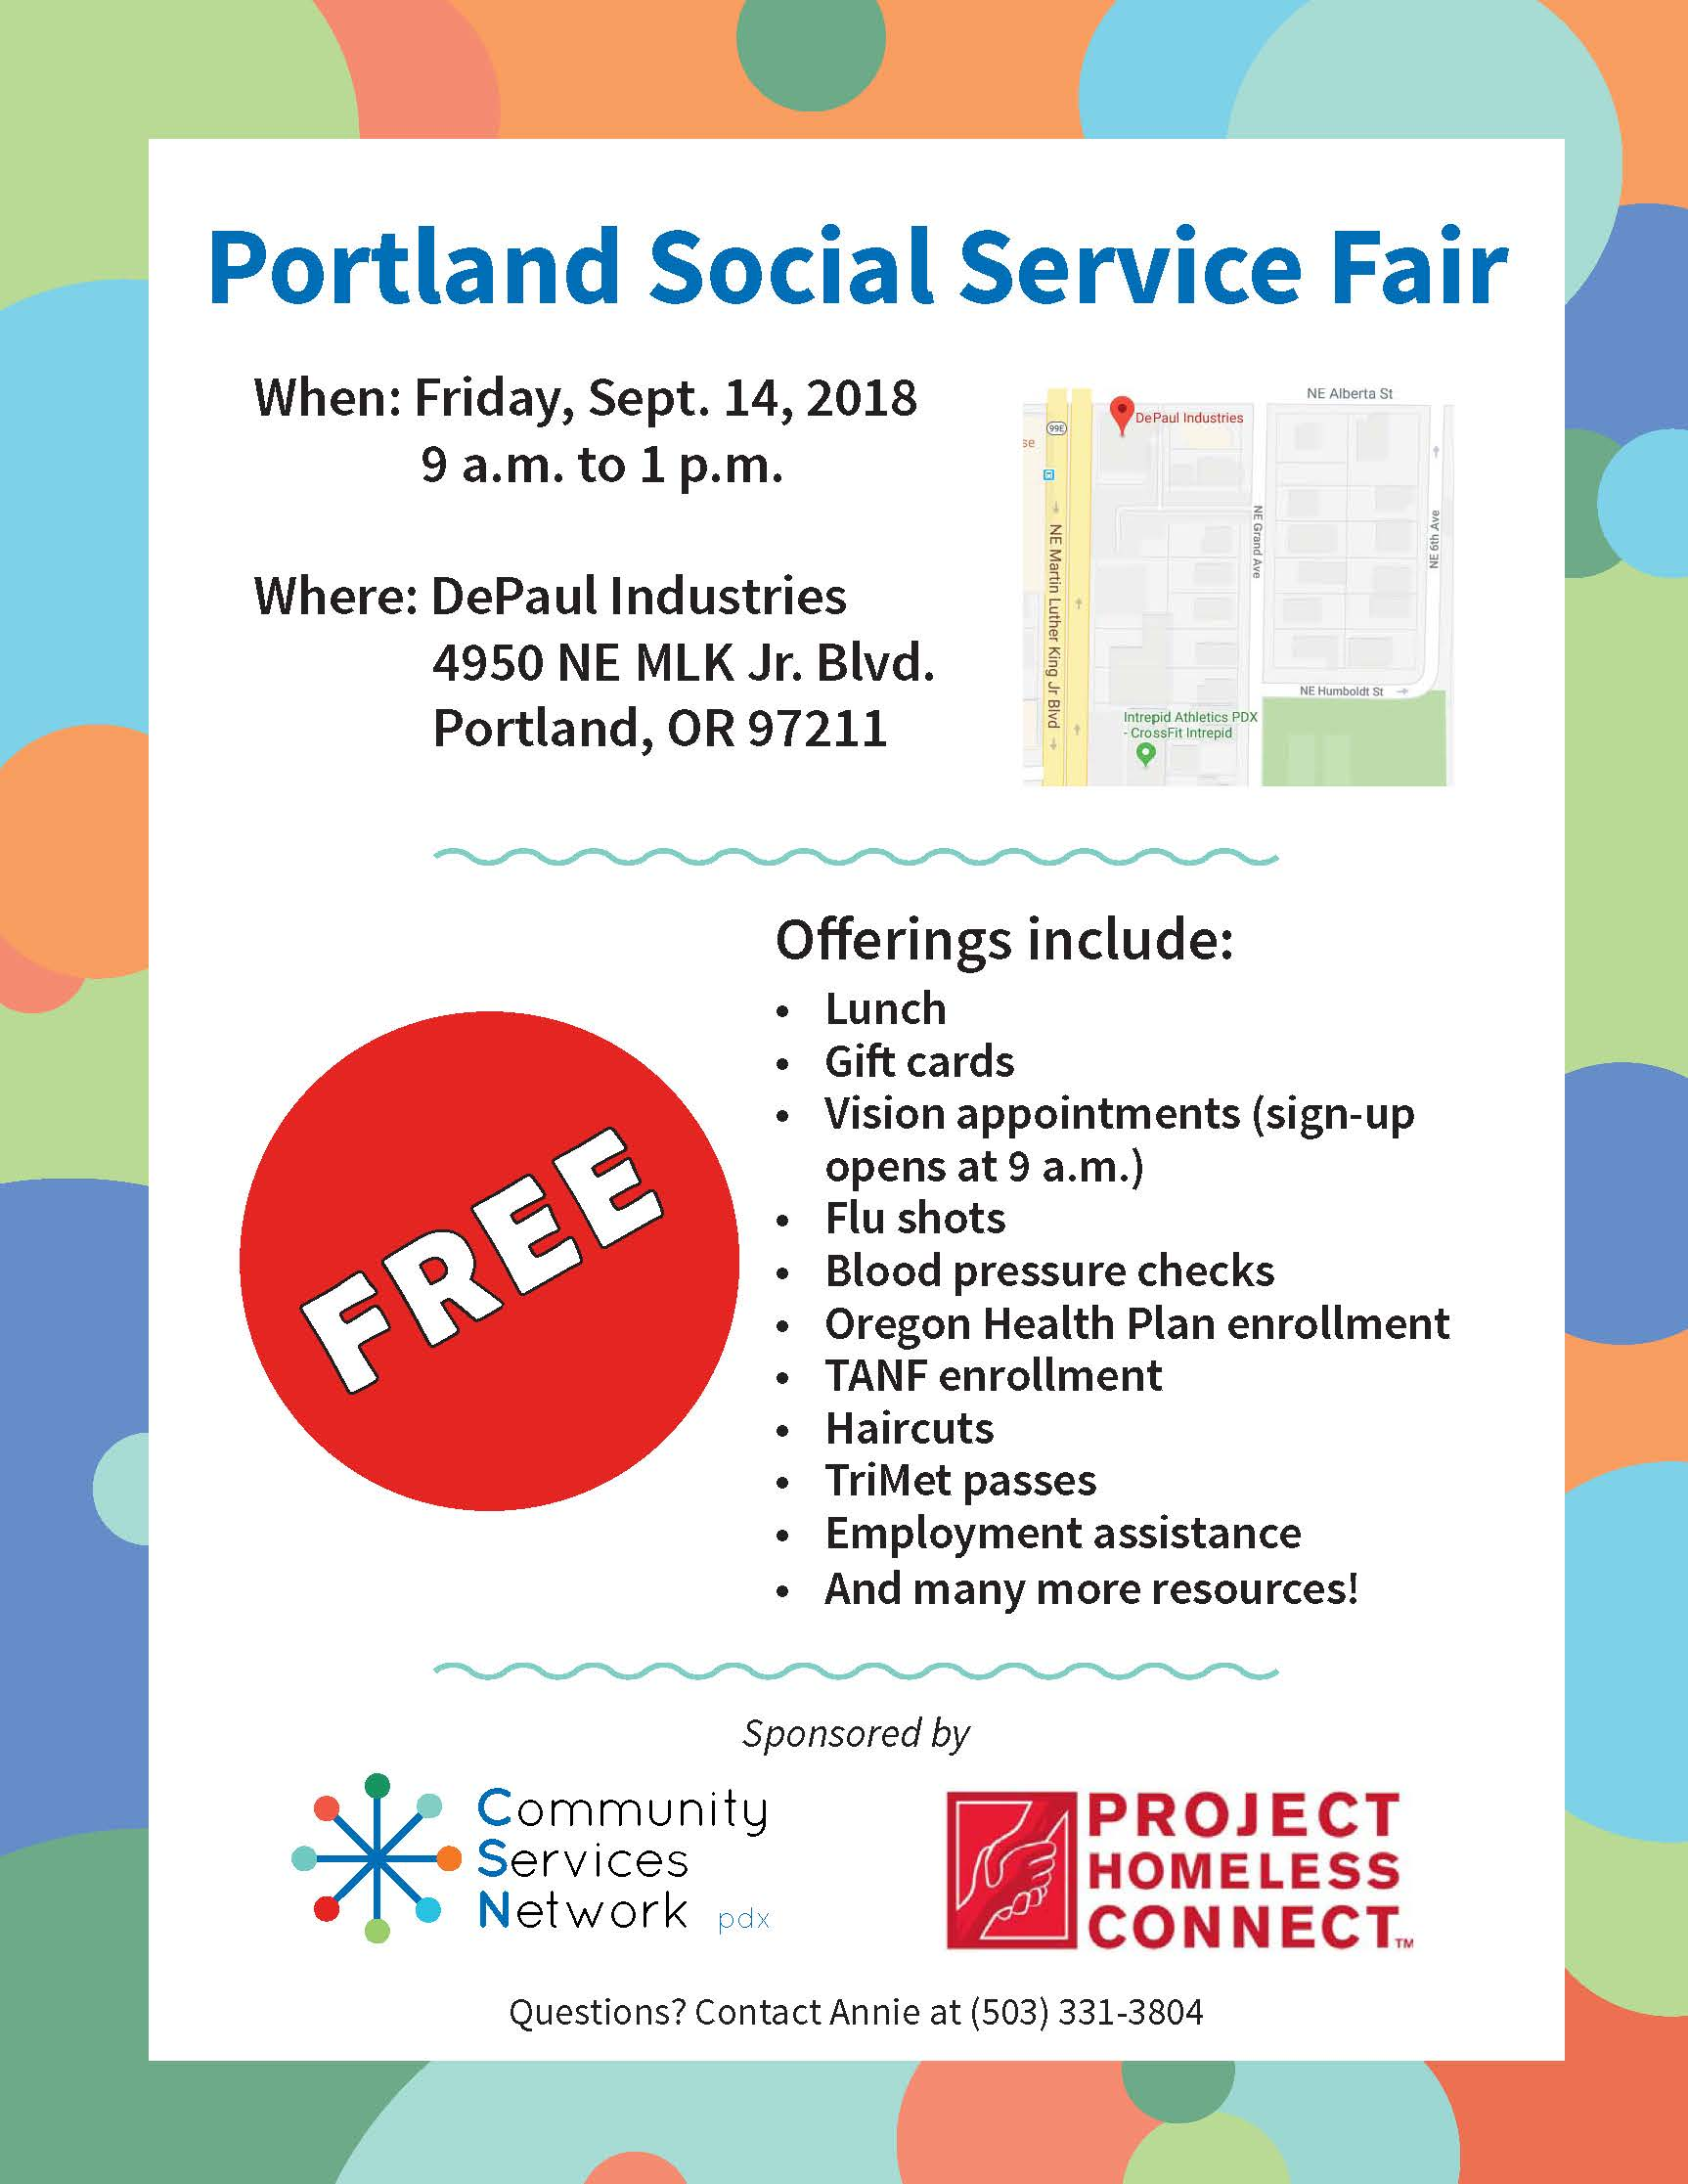 Social Service Fair Flyer - 8.5x11 - Sept. 14, 2018 - with flu shots.jpg